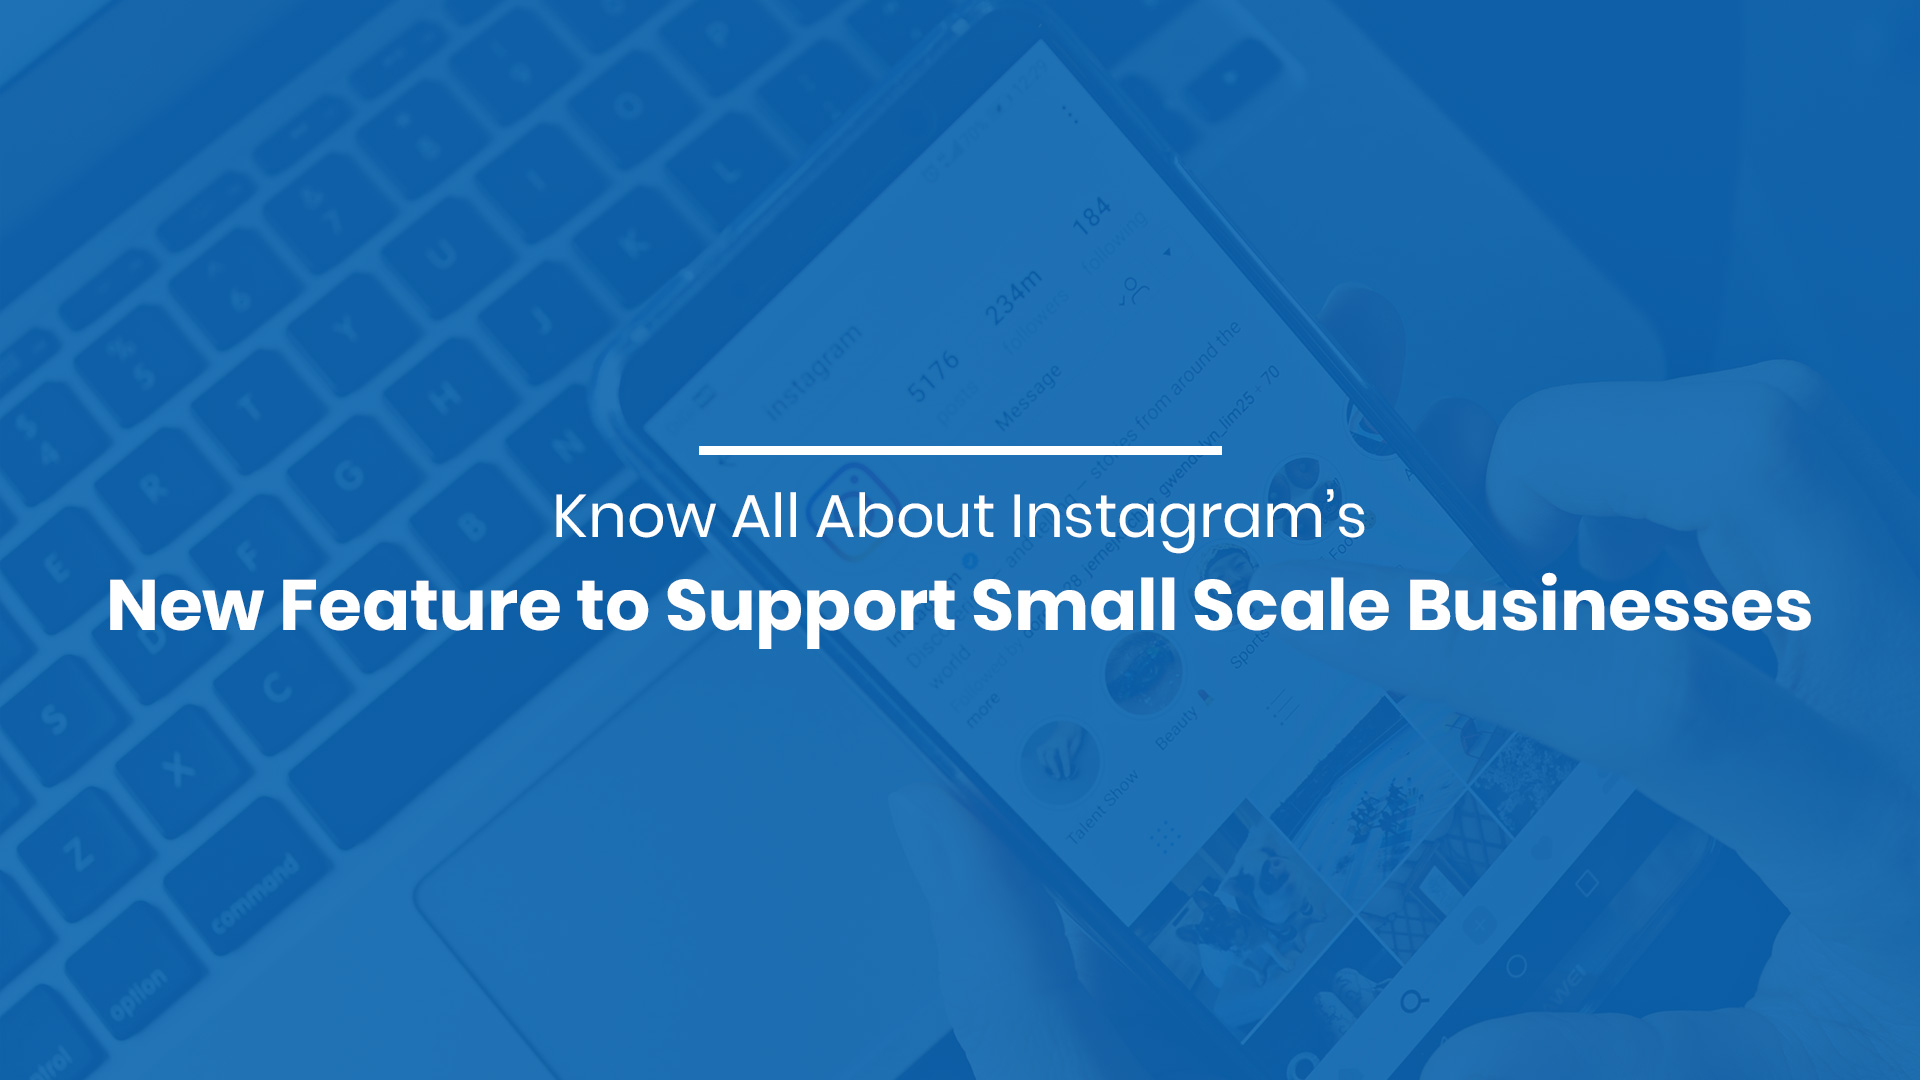 Instagram's New Feature to Support Small Scale Businesses